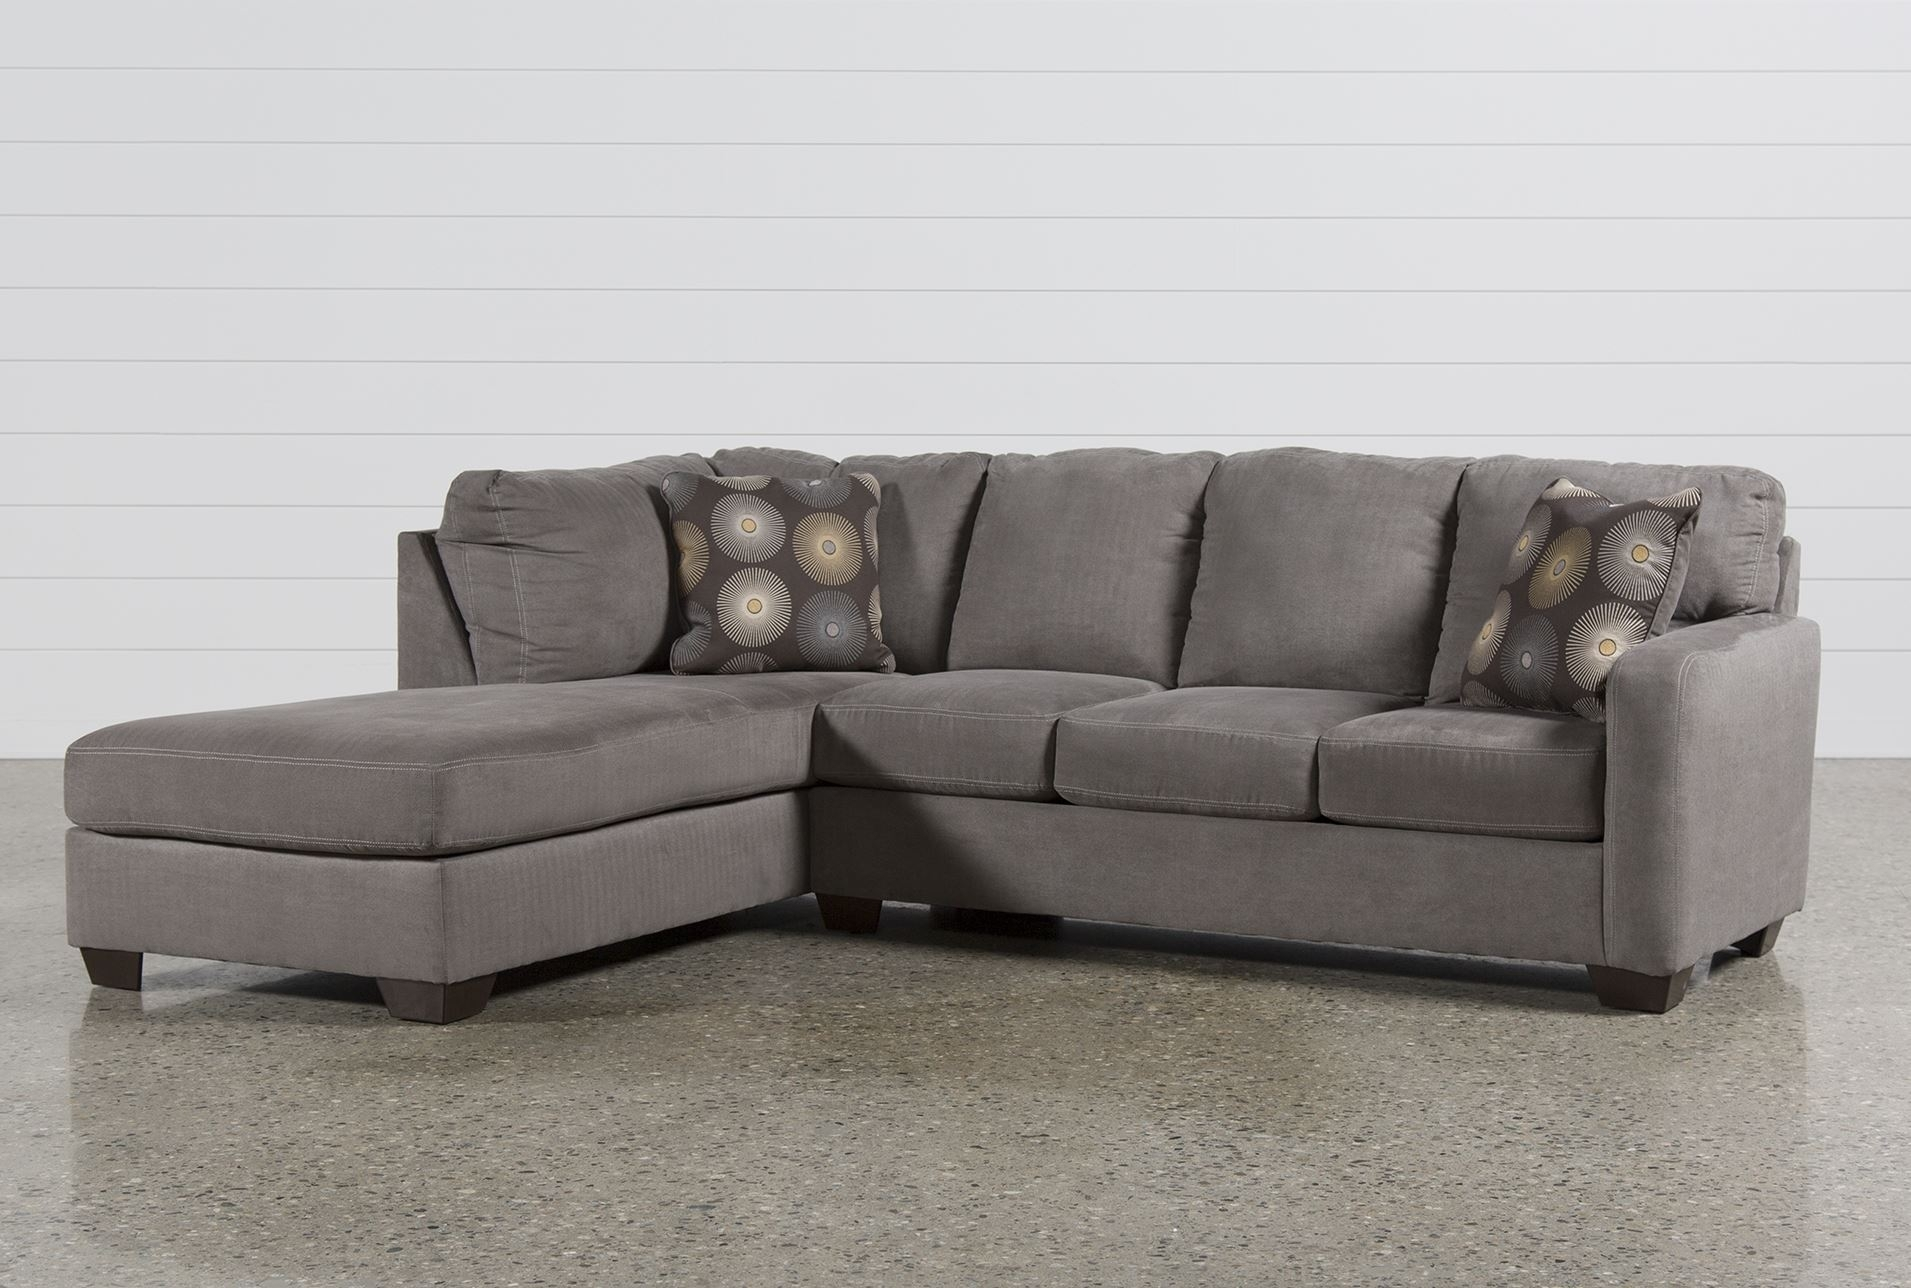 Laf Chaise Sectional Sofa | Baci Living Room Throughout Arrowmask 2 Piece Sectionals With Sleeper & Left Facing Chaise (View 7 of 25)